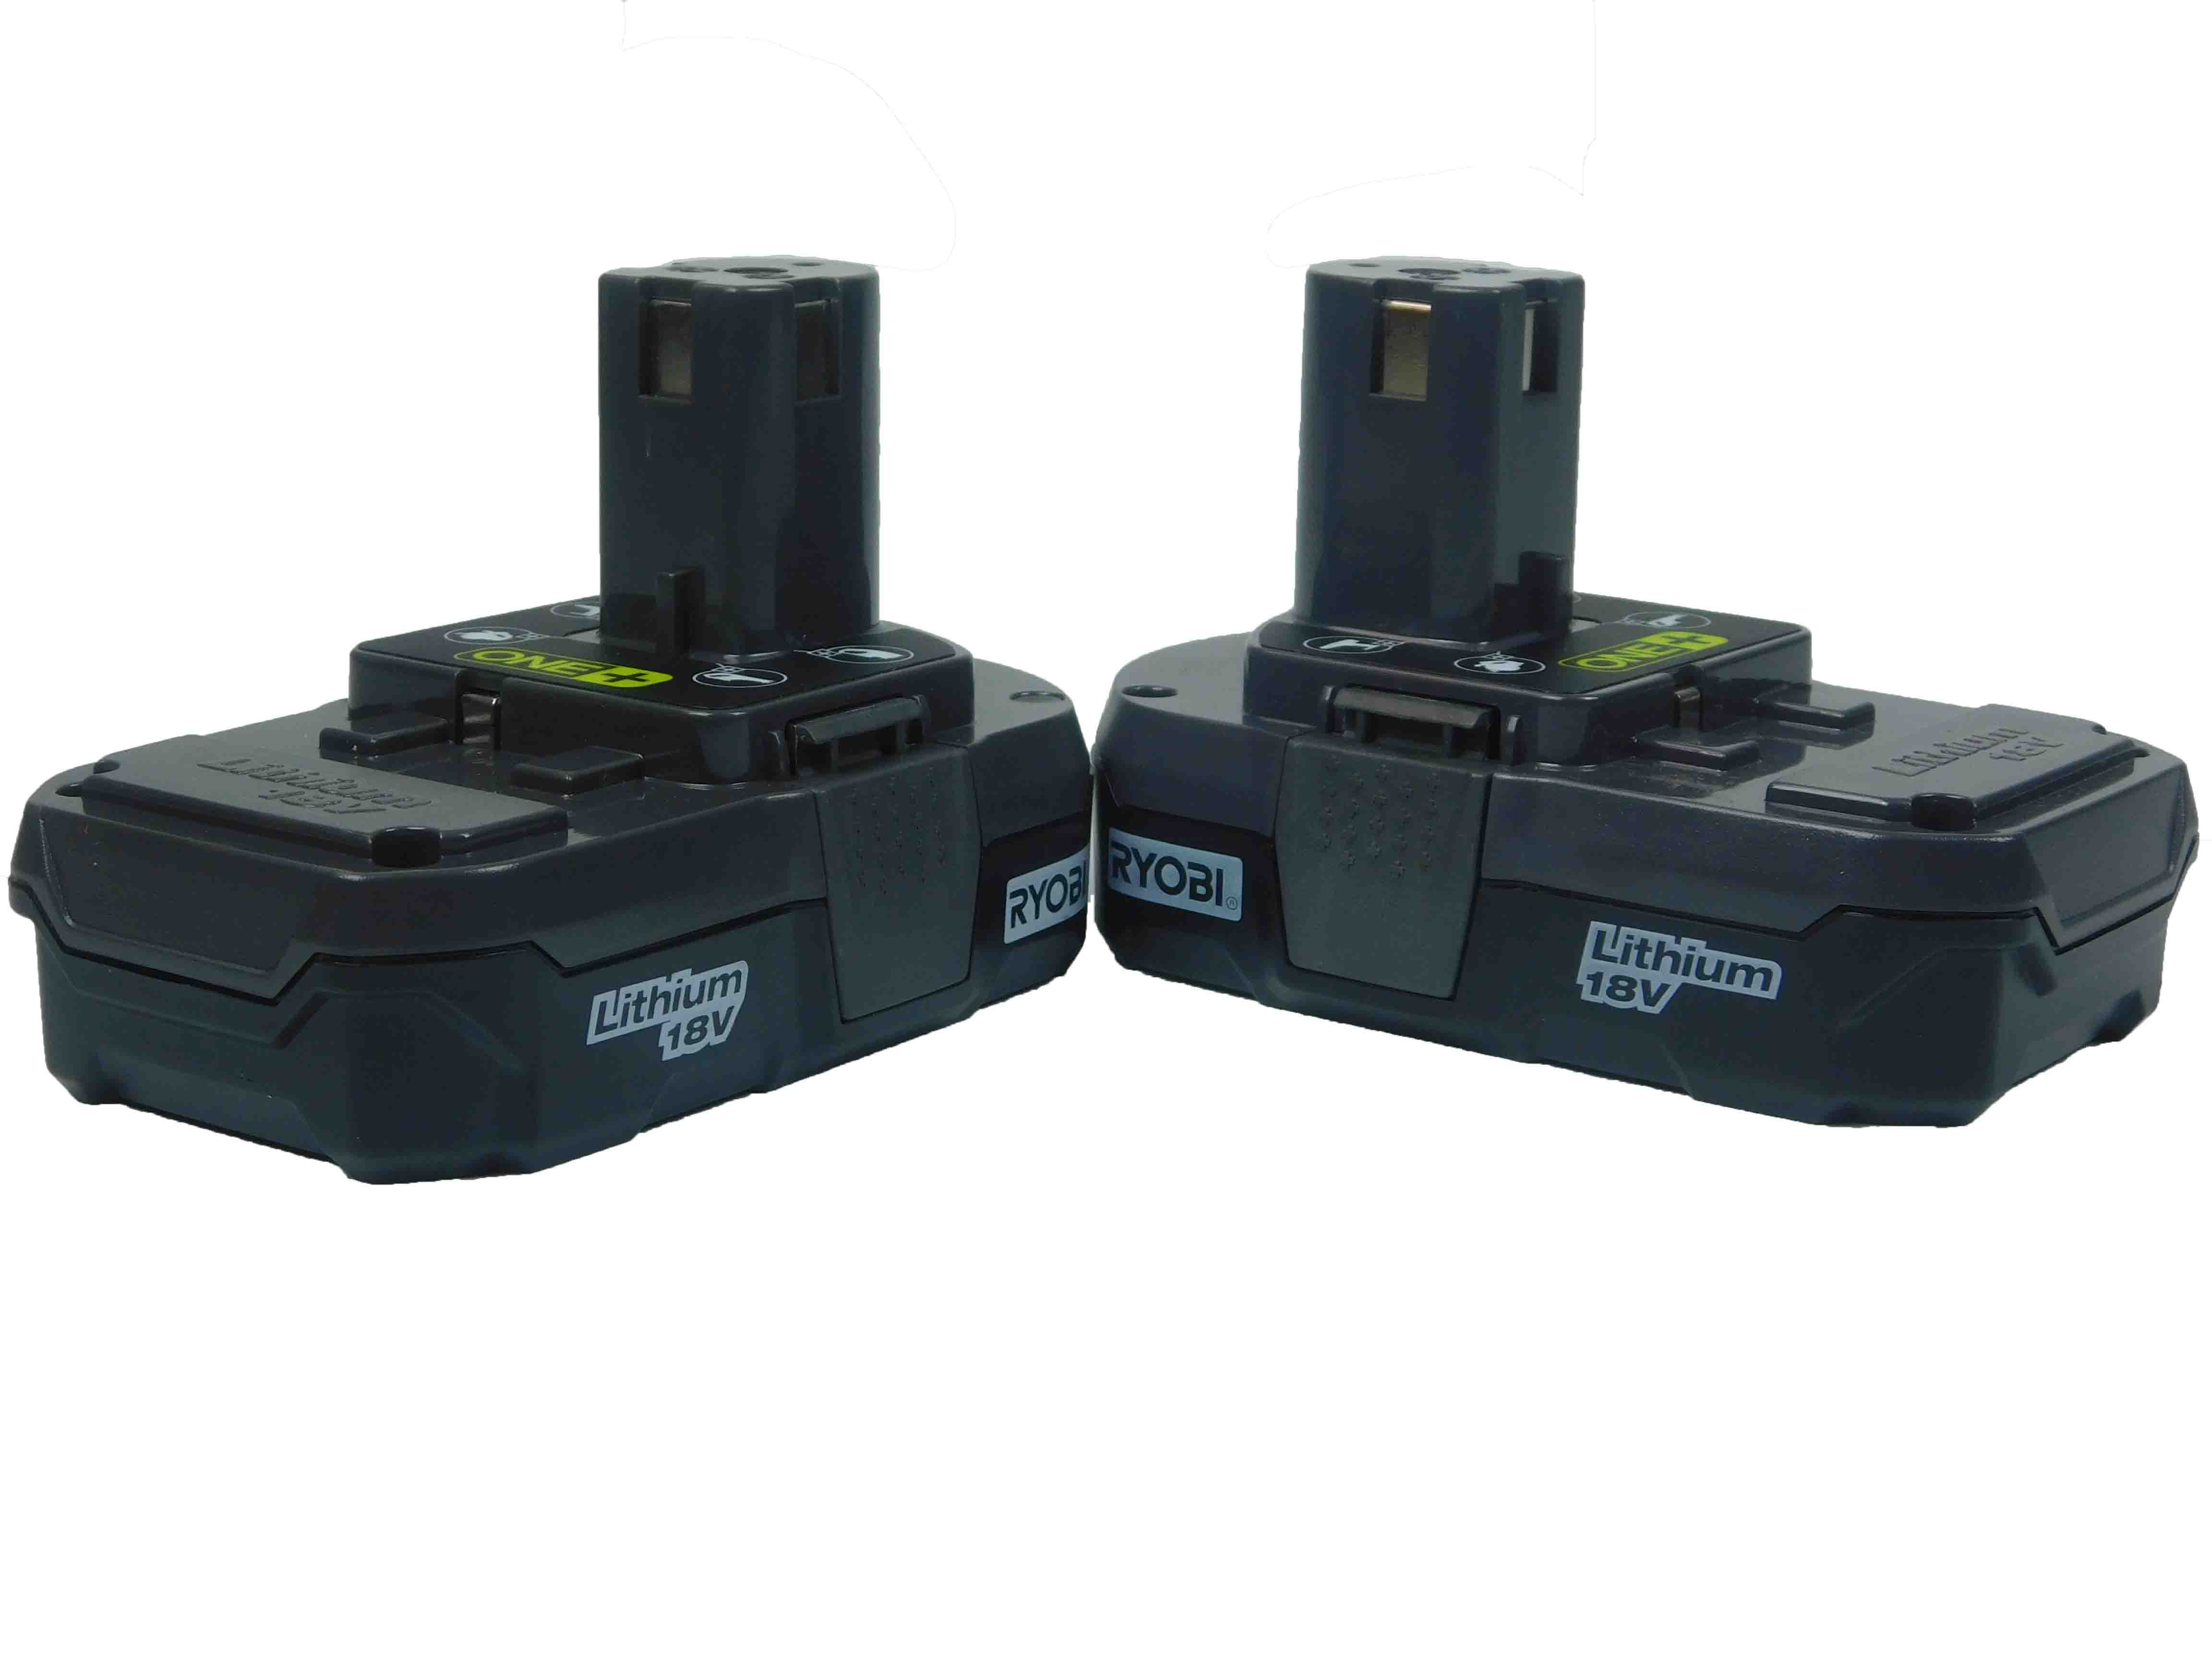 Ryobi-One-P102-18V-Lithium-Ion-Battery-Two-Pack-image-2